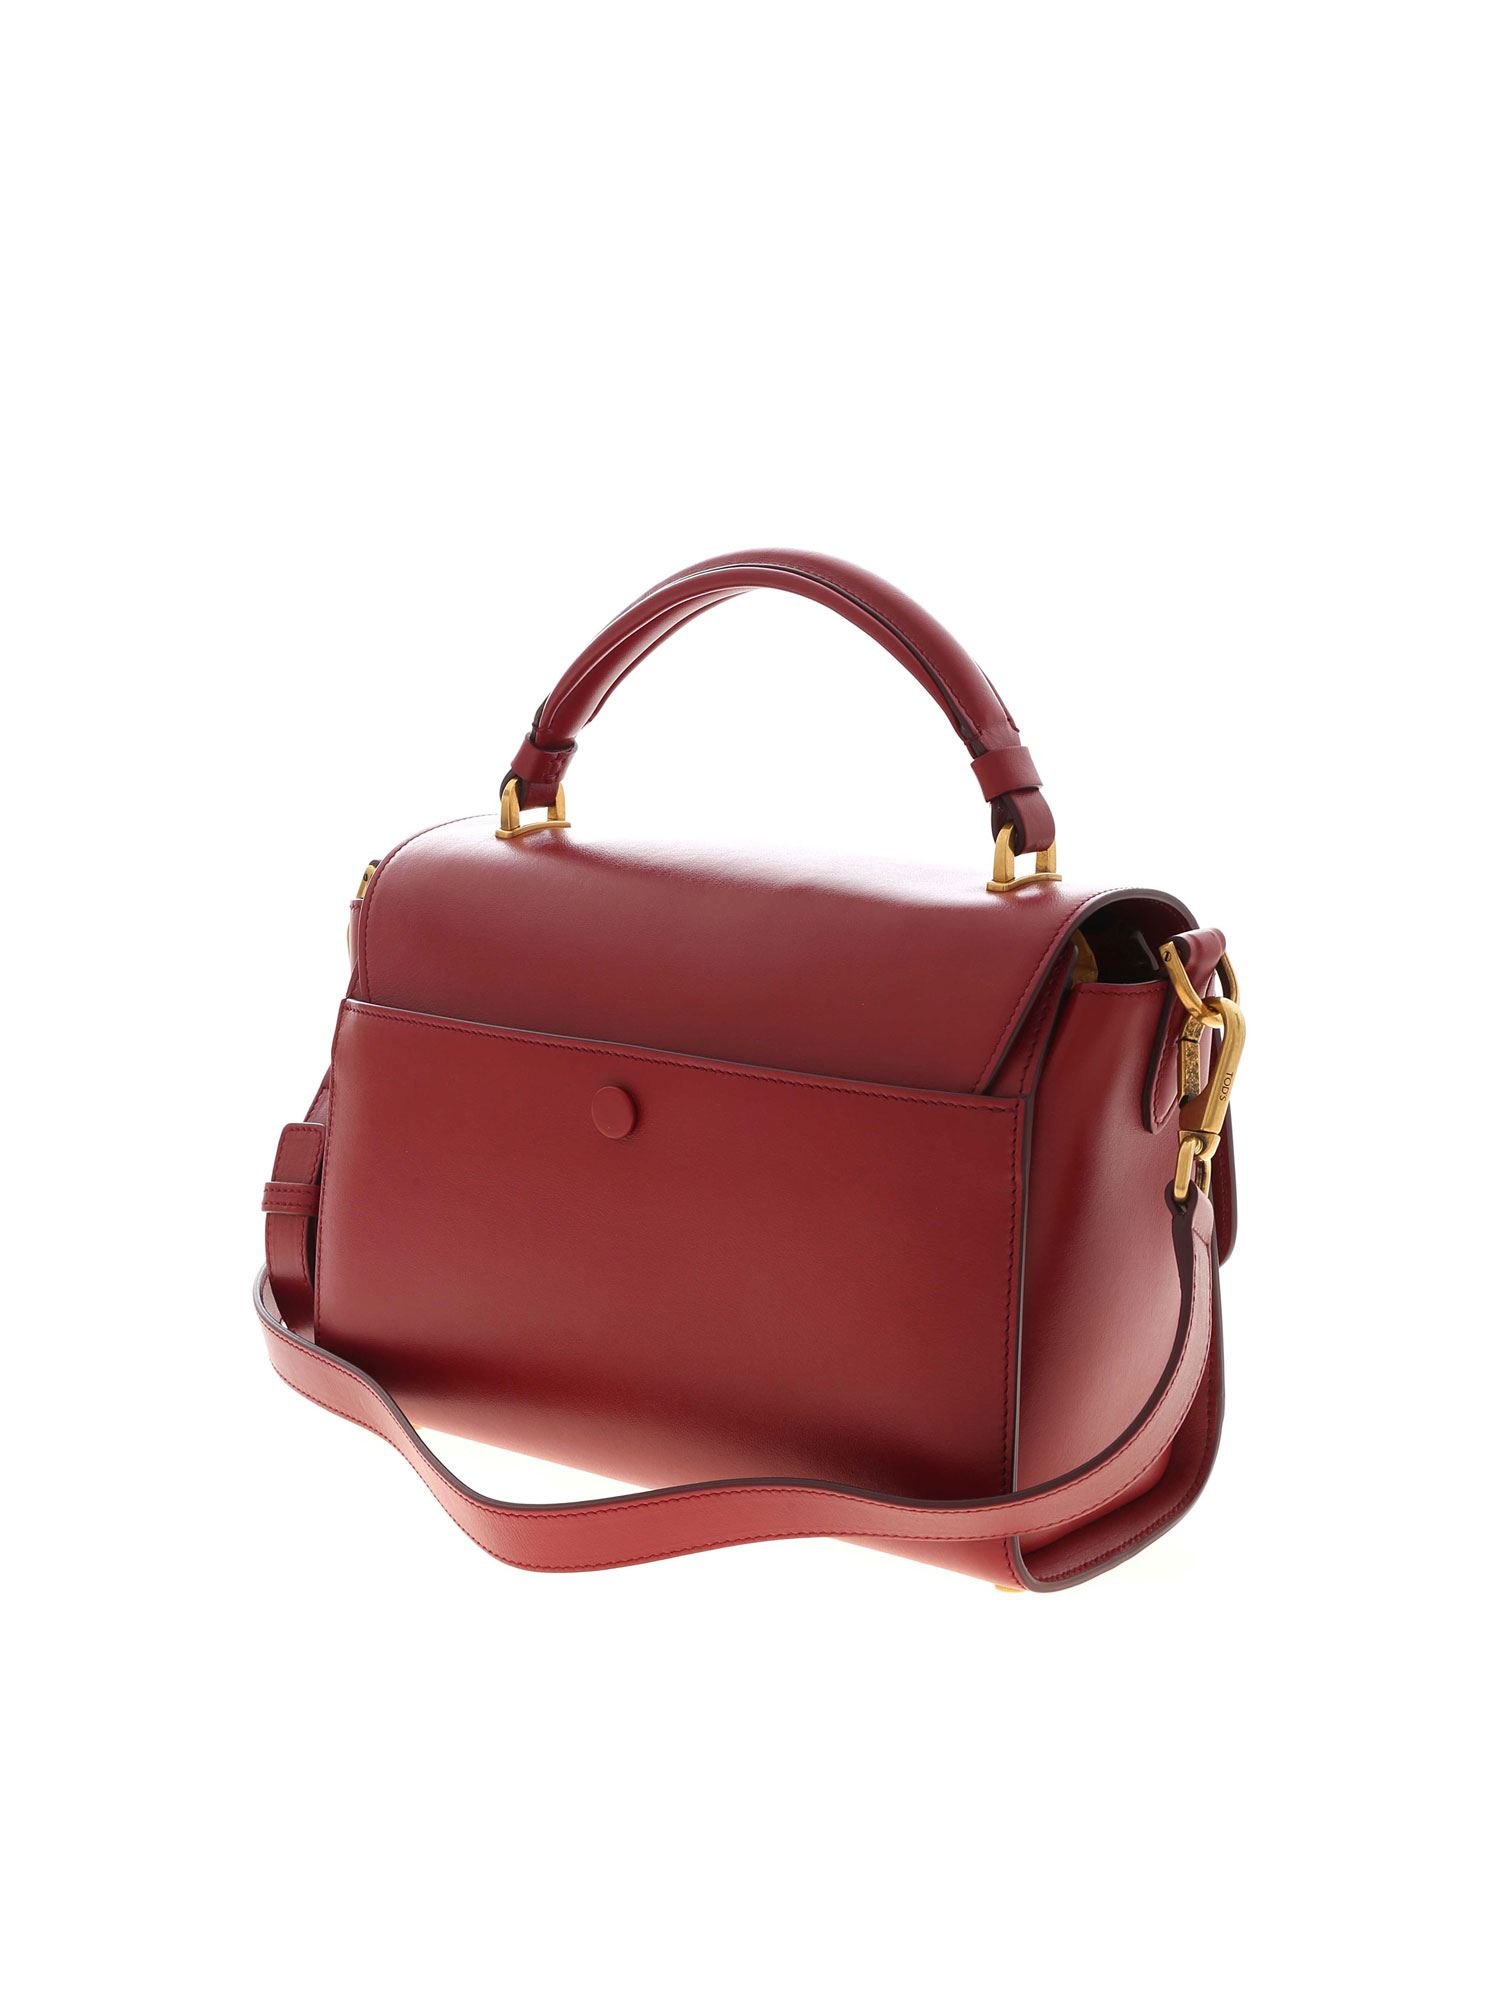 MESSENGER SMALL HANDBAG IN BURGUNDY TOD